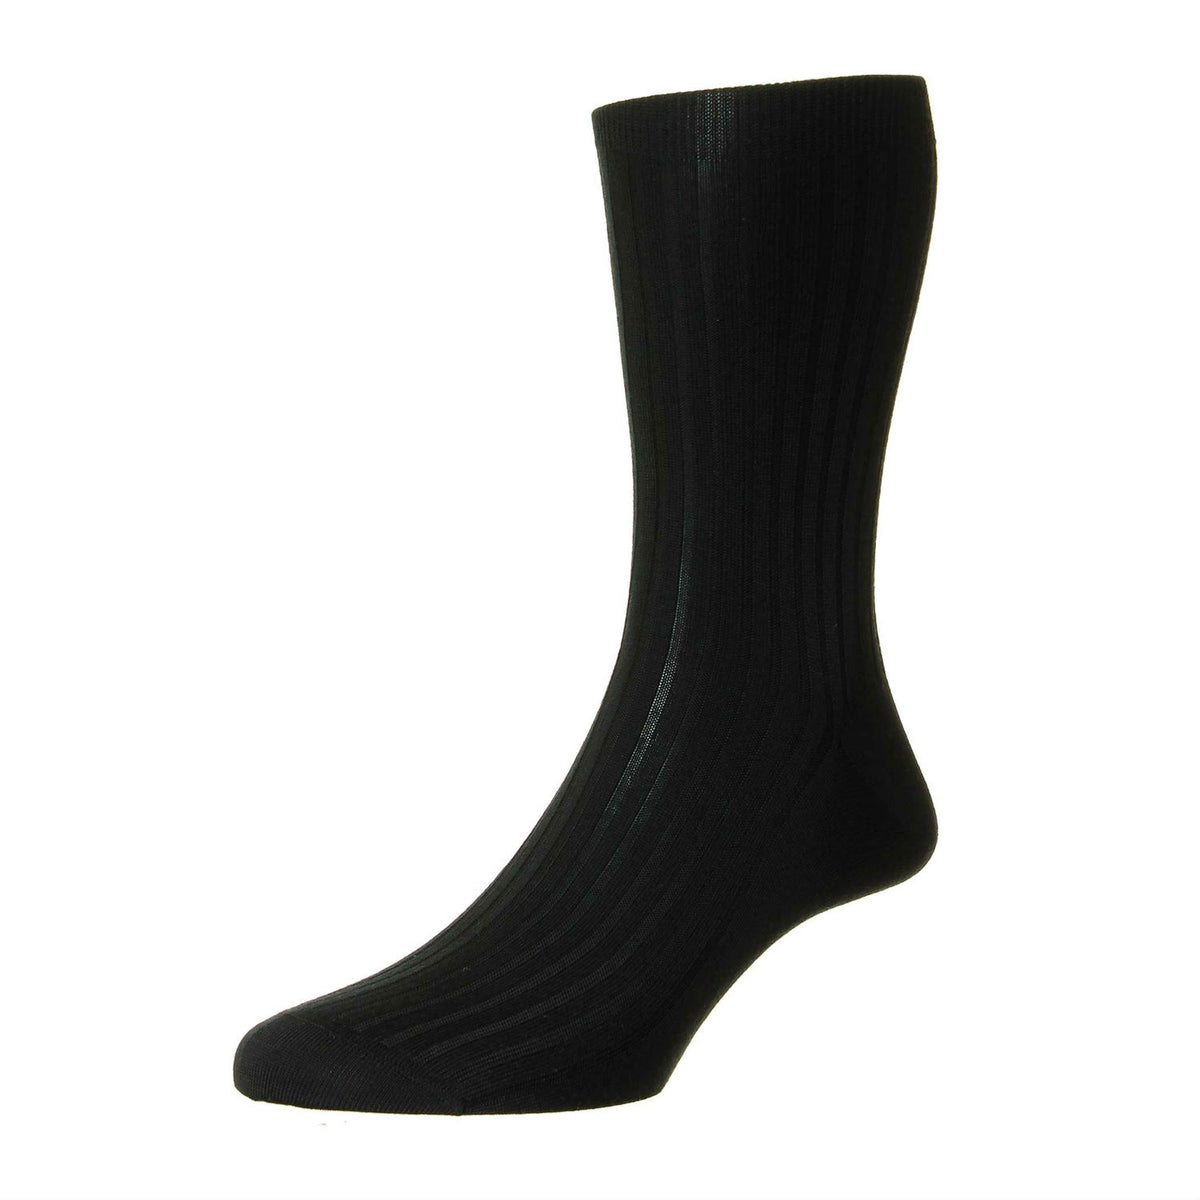 Mens Black Pure Cashmere Socks | Made in England | Calf Length Sock | shop at The Cashmere Choice London